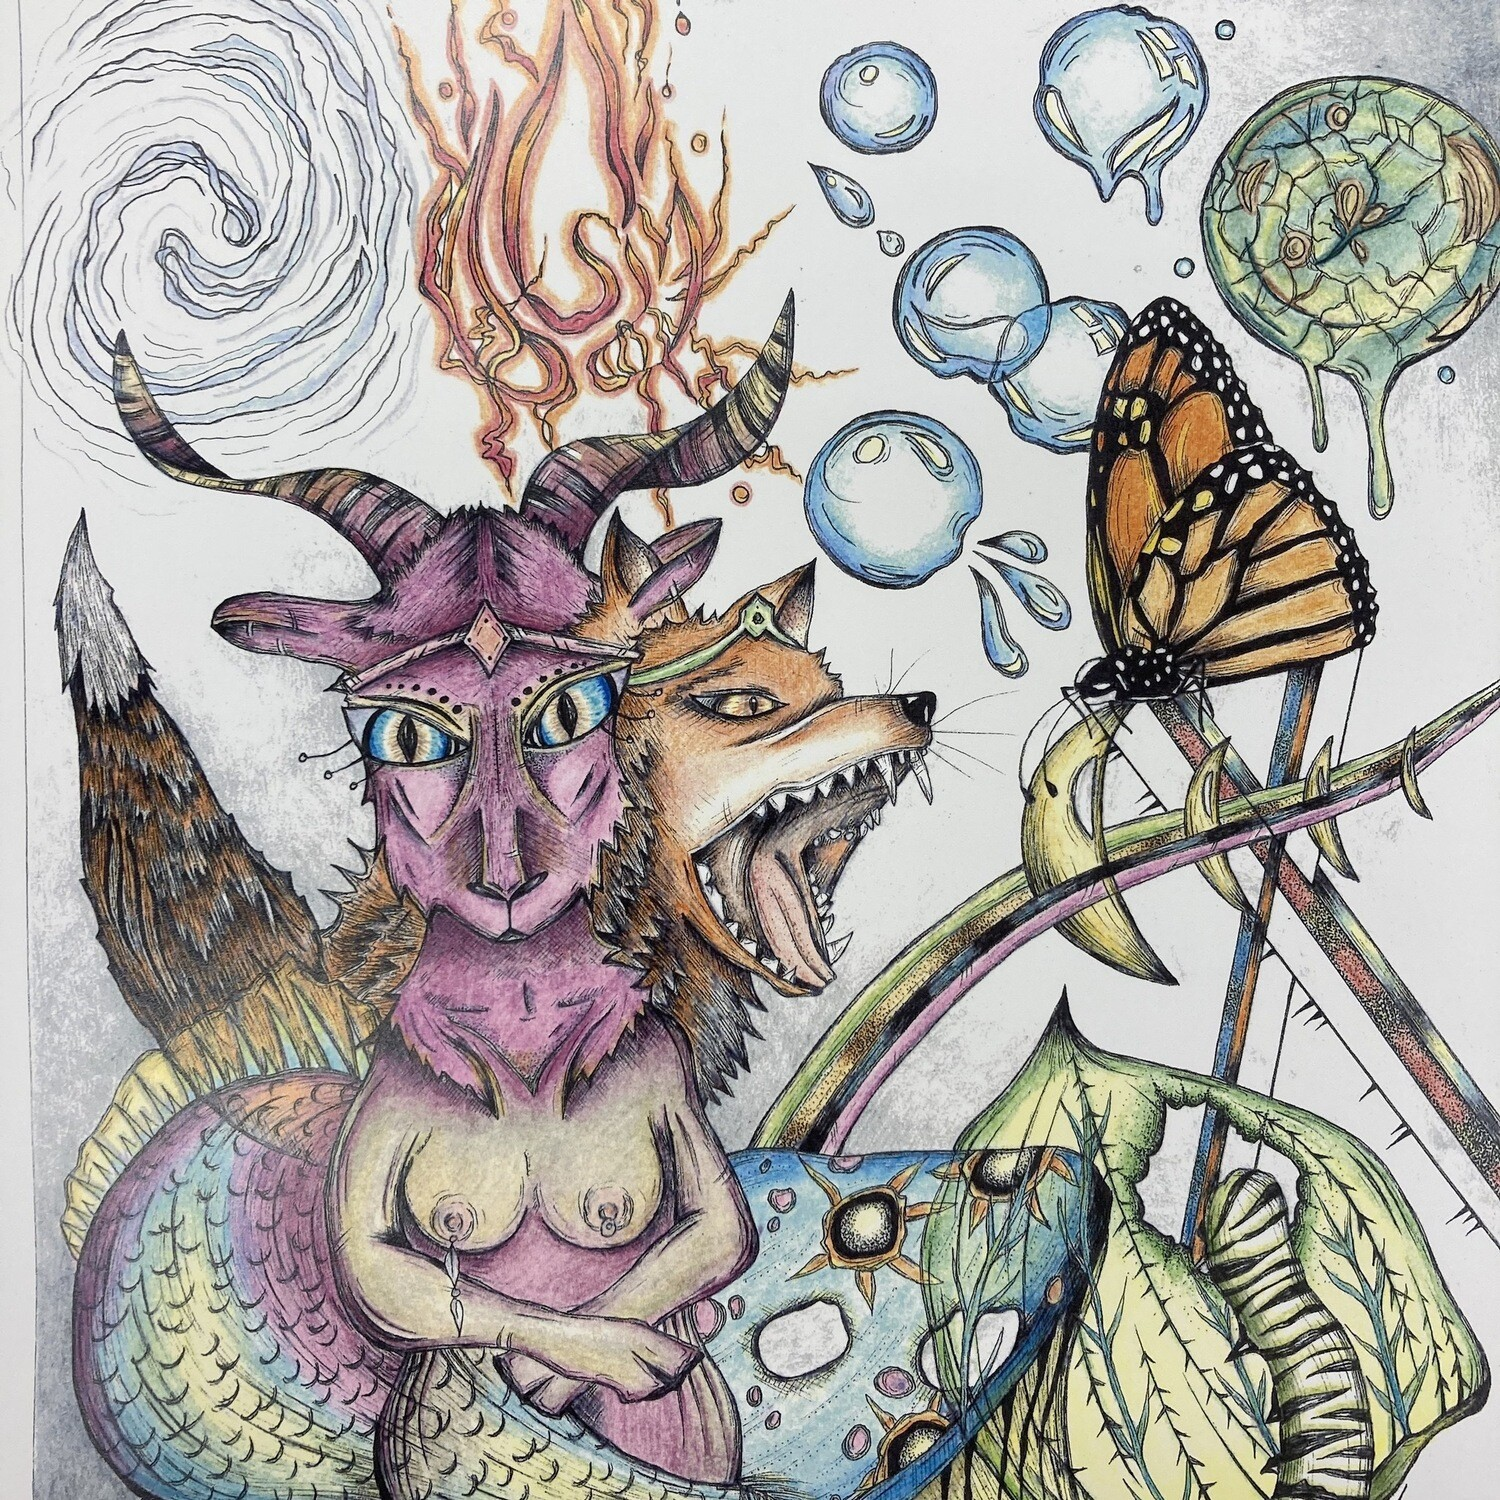 Cacophony Metamorphosis Print By Nuanced Earth Art